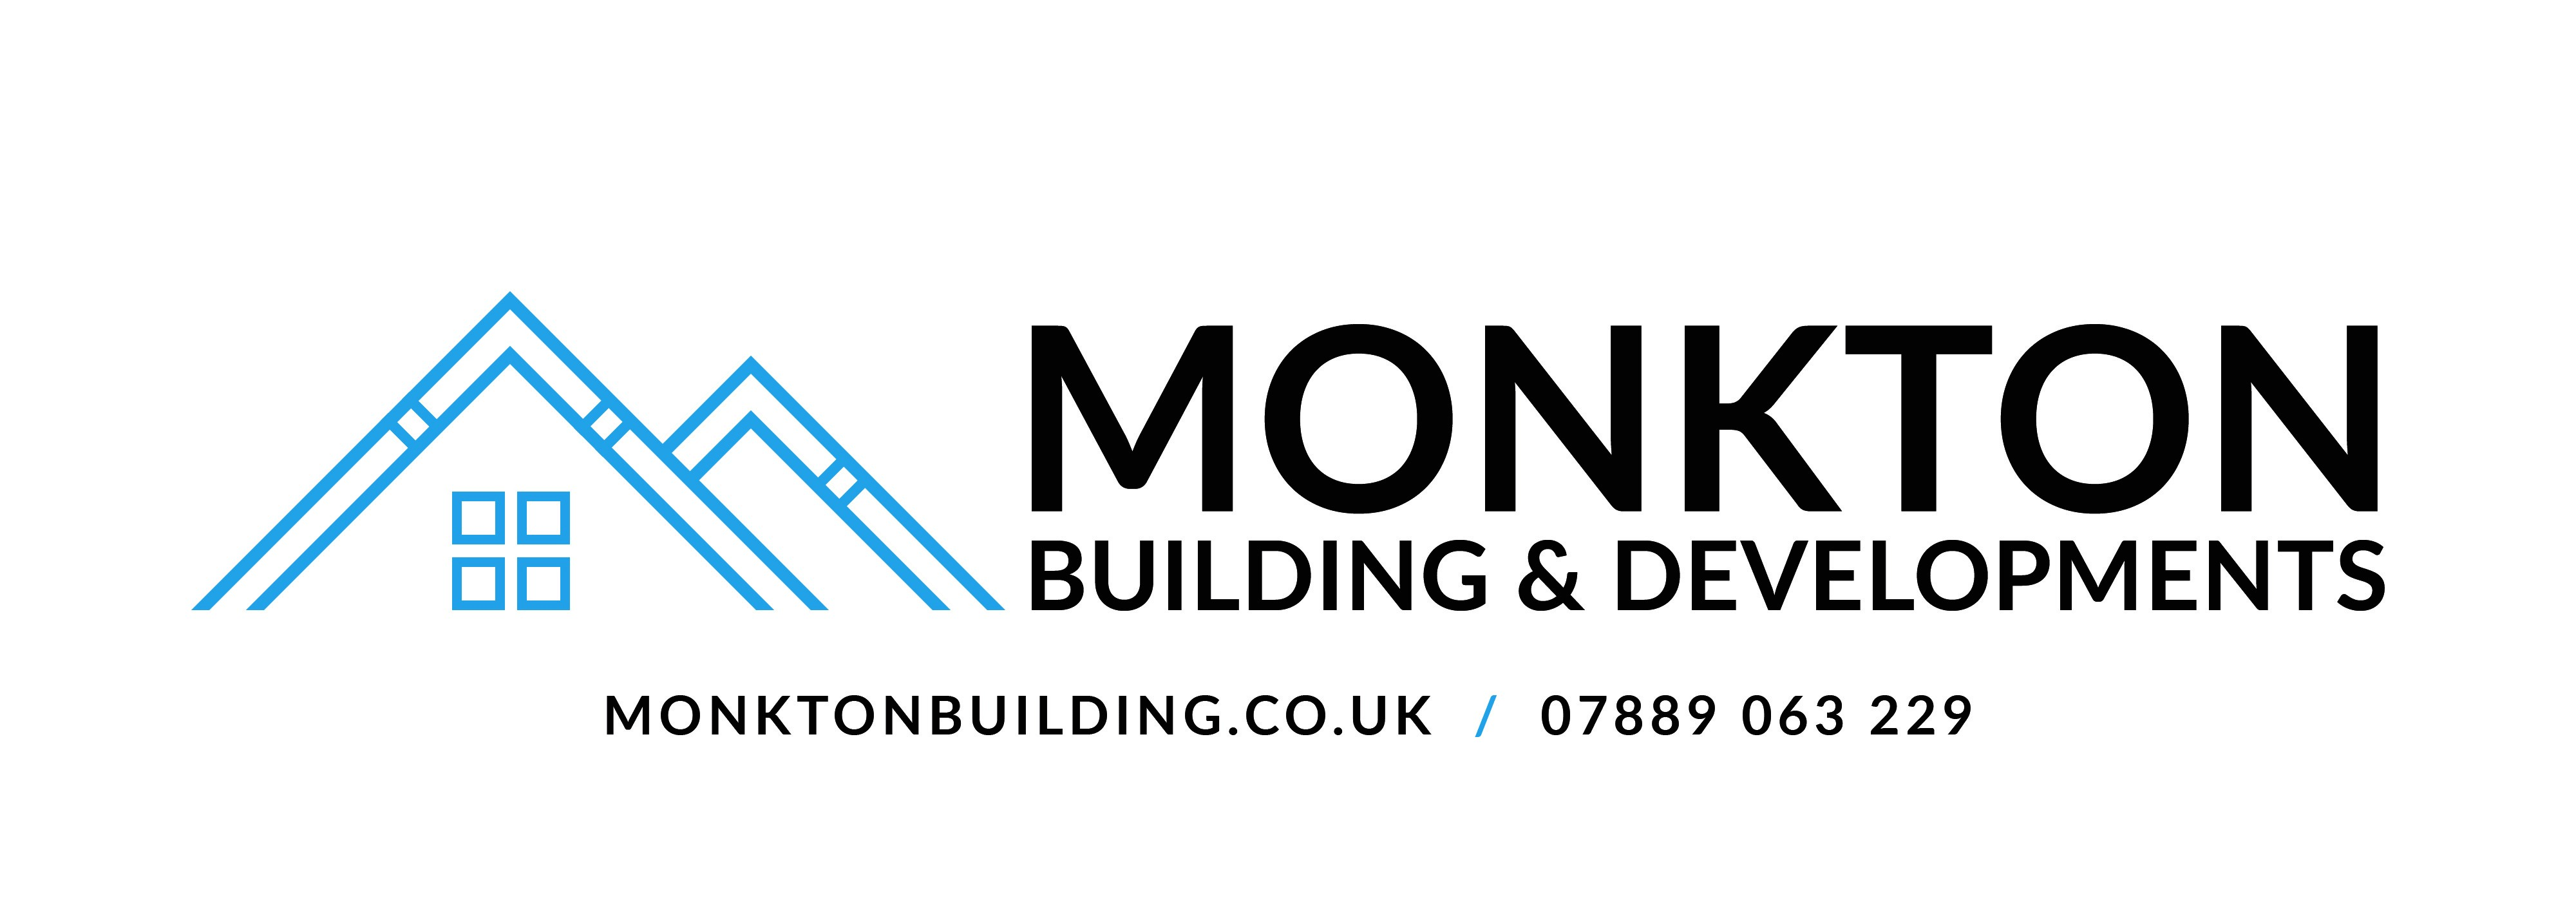 Monkton Developments